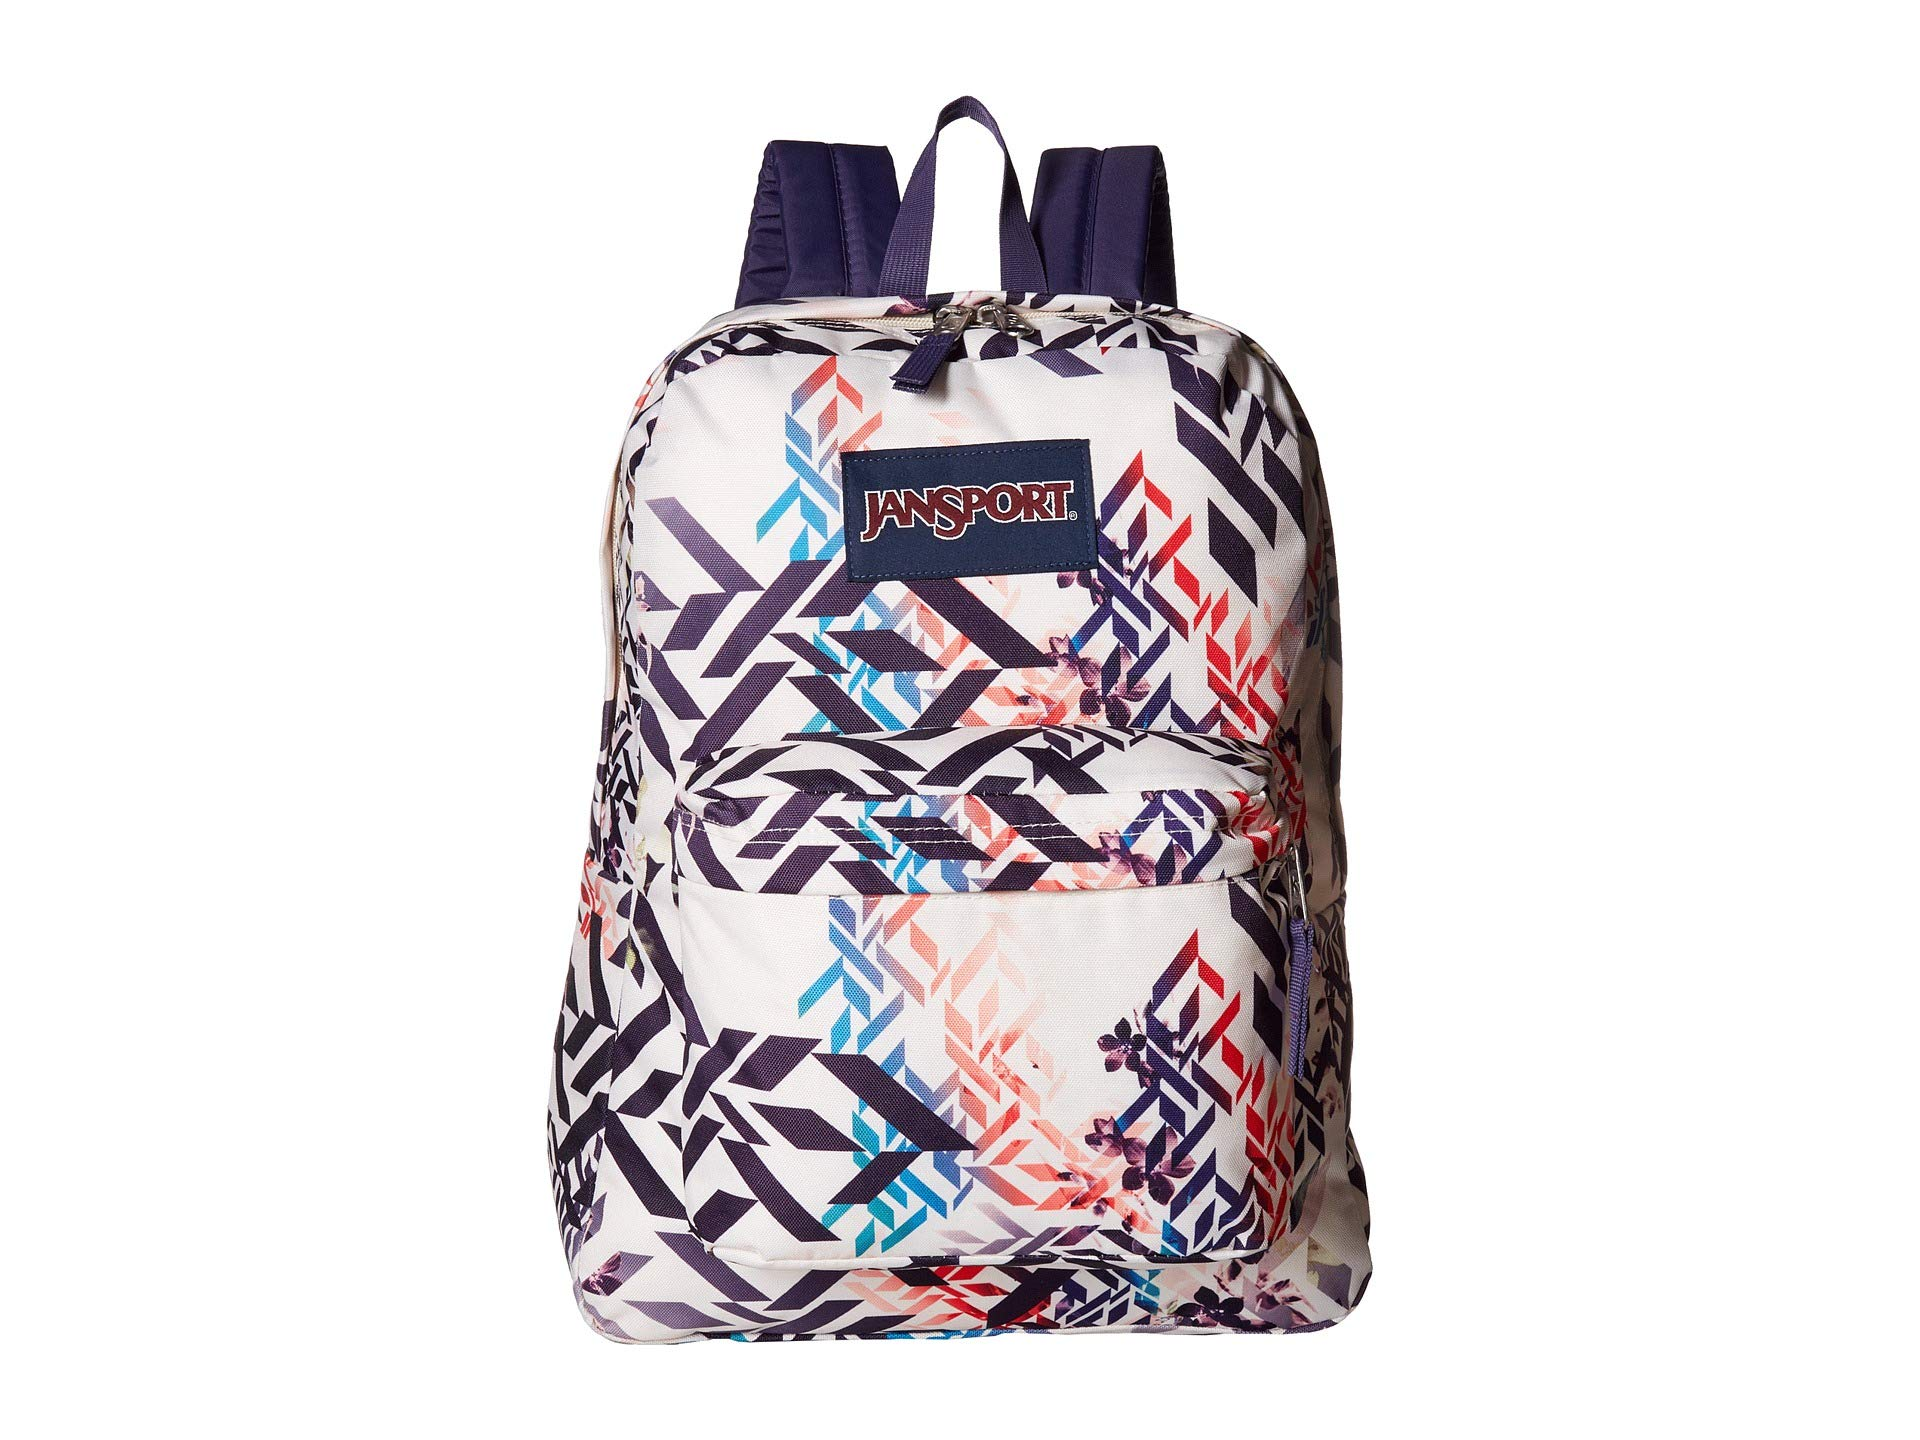 JanSport Superbreak Backpack - Botanical Geo - Classic, Ultralight